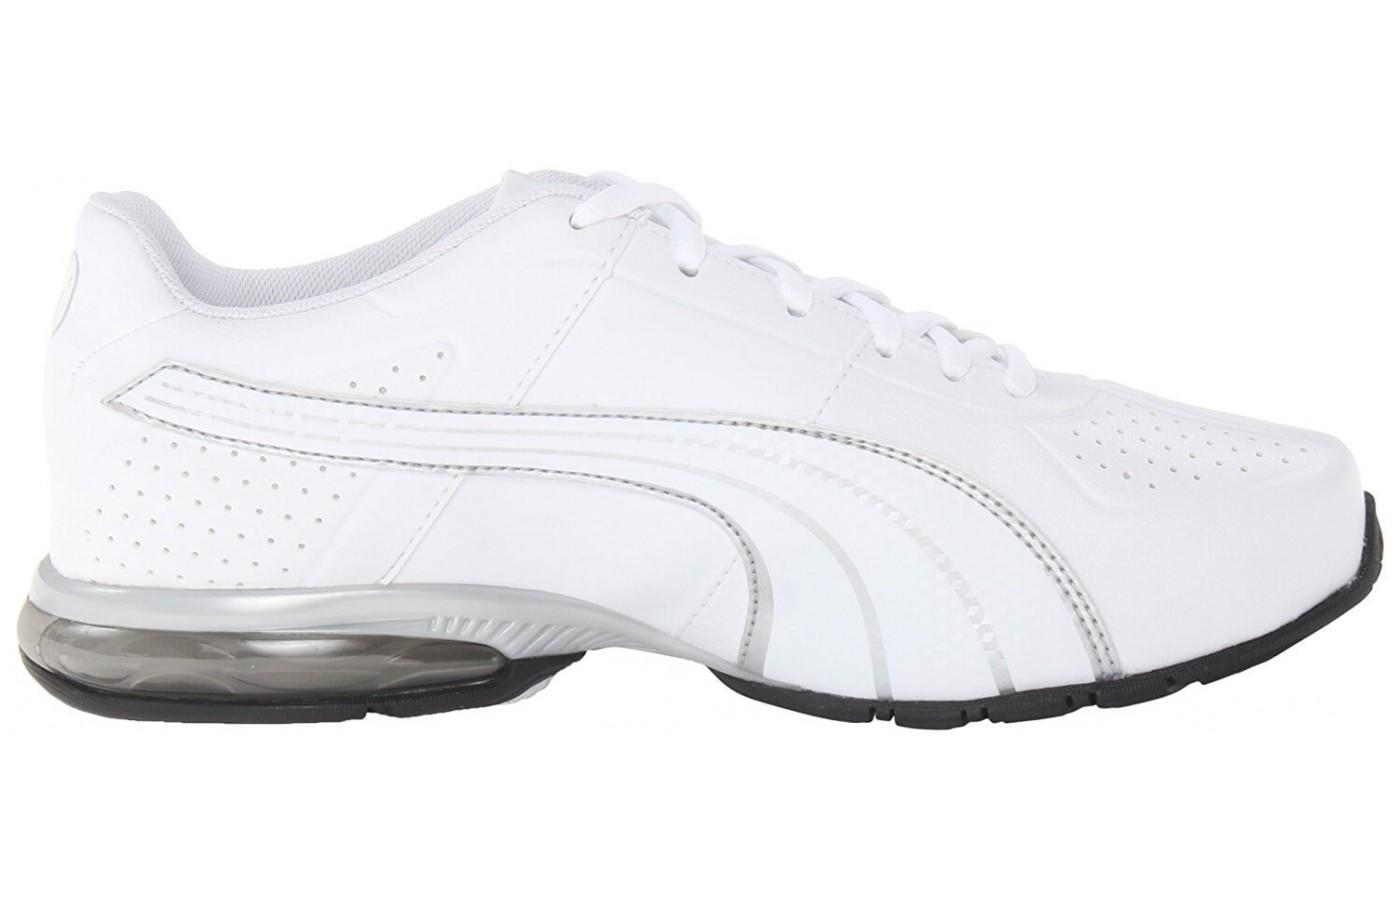 Runners love the sleek, classic look of this shoe.